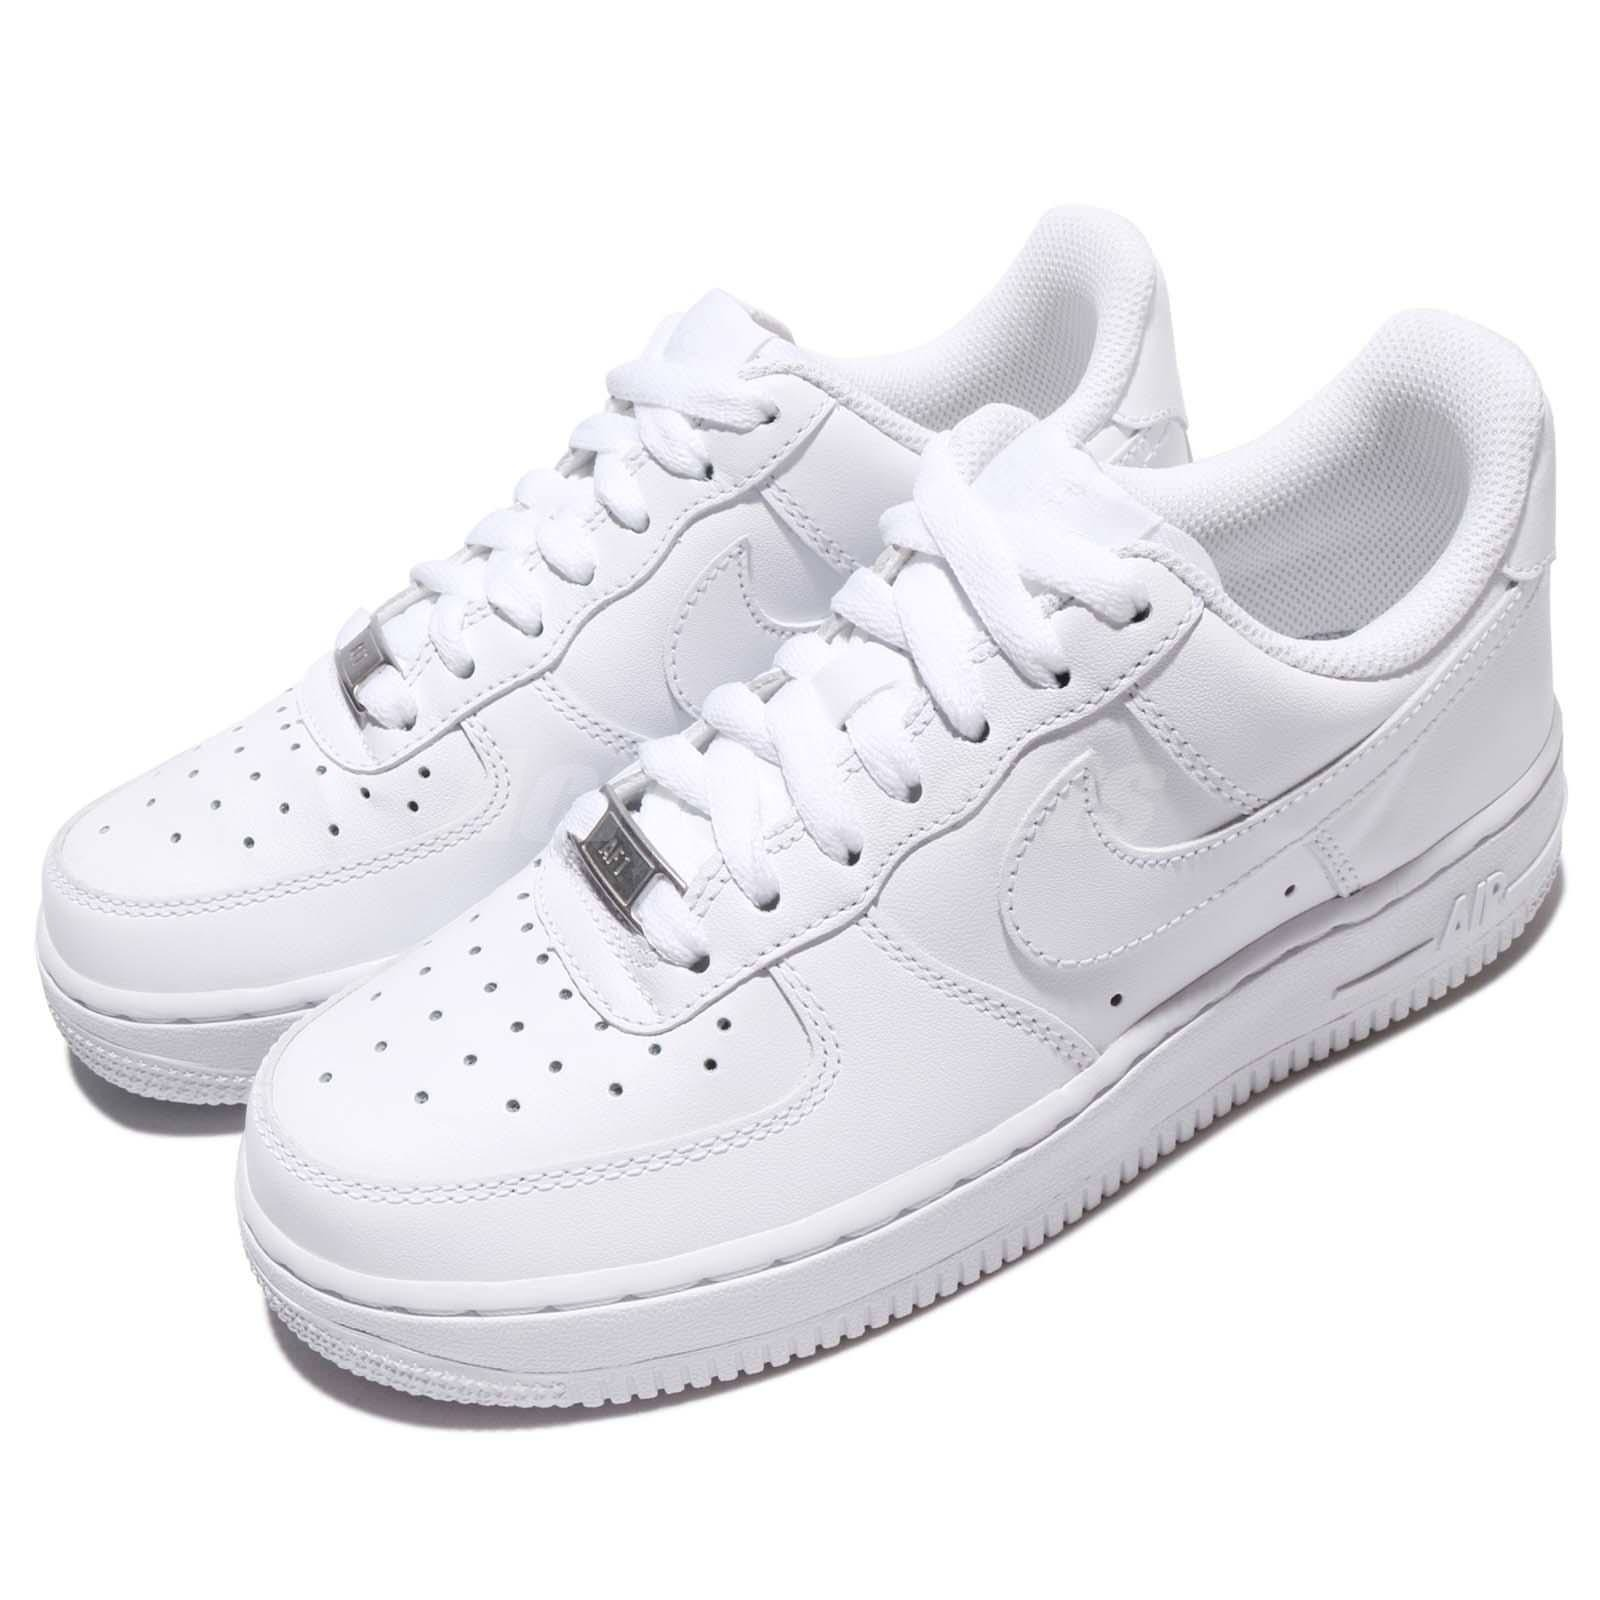 9d46d9d487bb5d Wmns Nike Air Force Force Force 1 07 Whiteout Womens Classic Shoes AF1  Sneakers 315115-